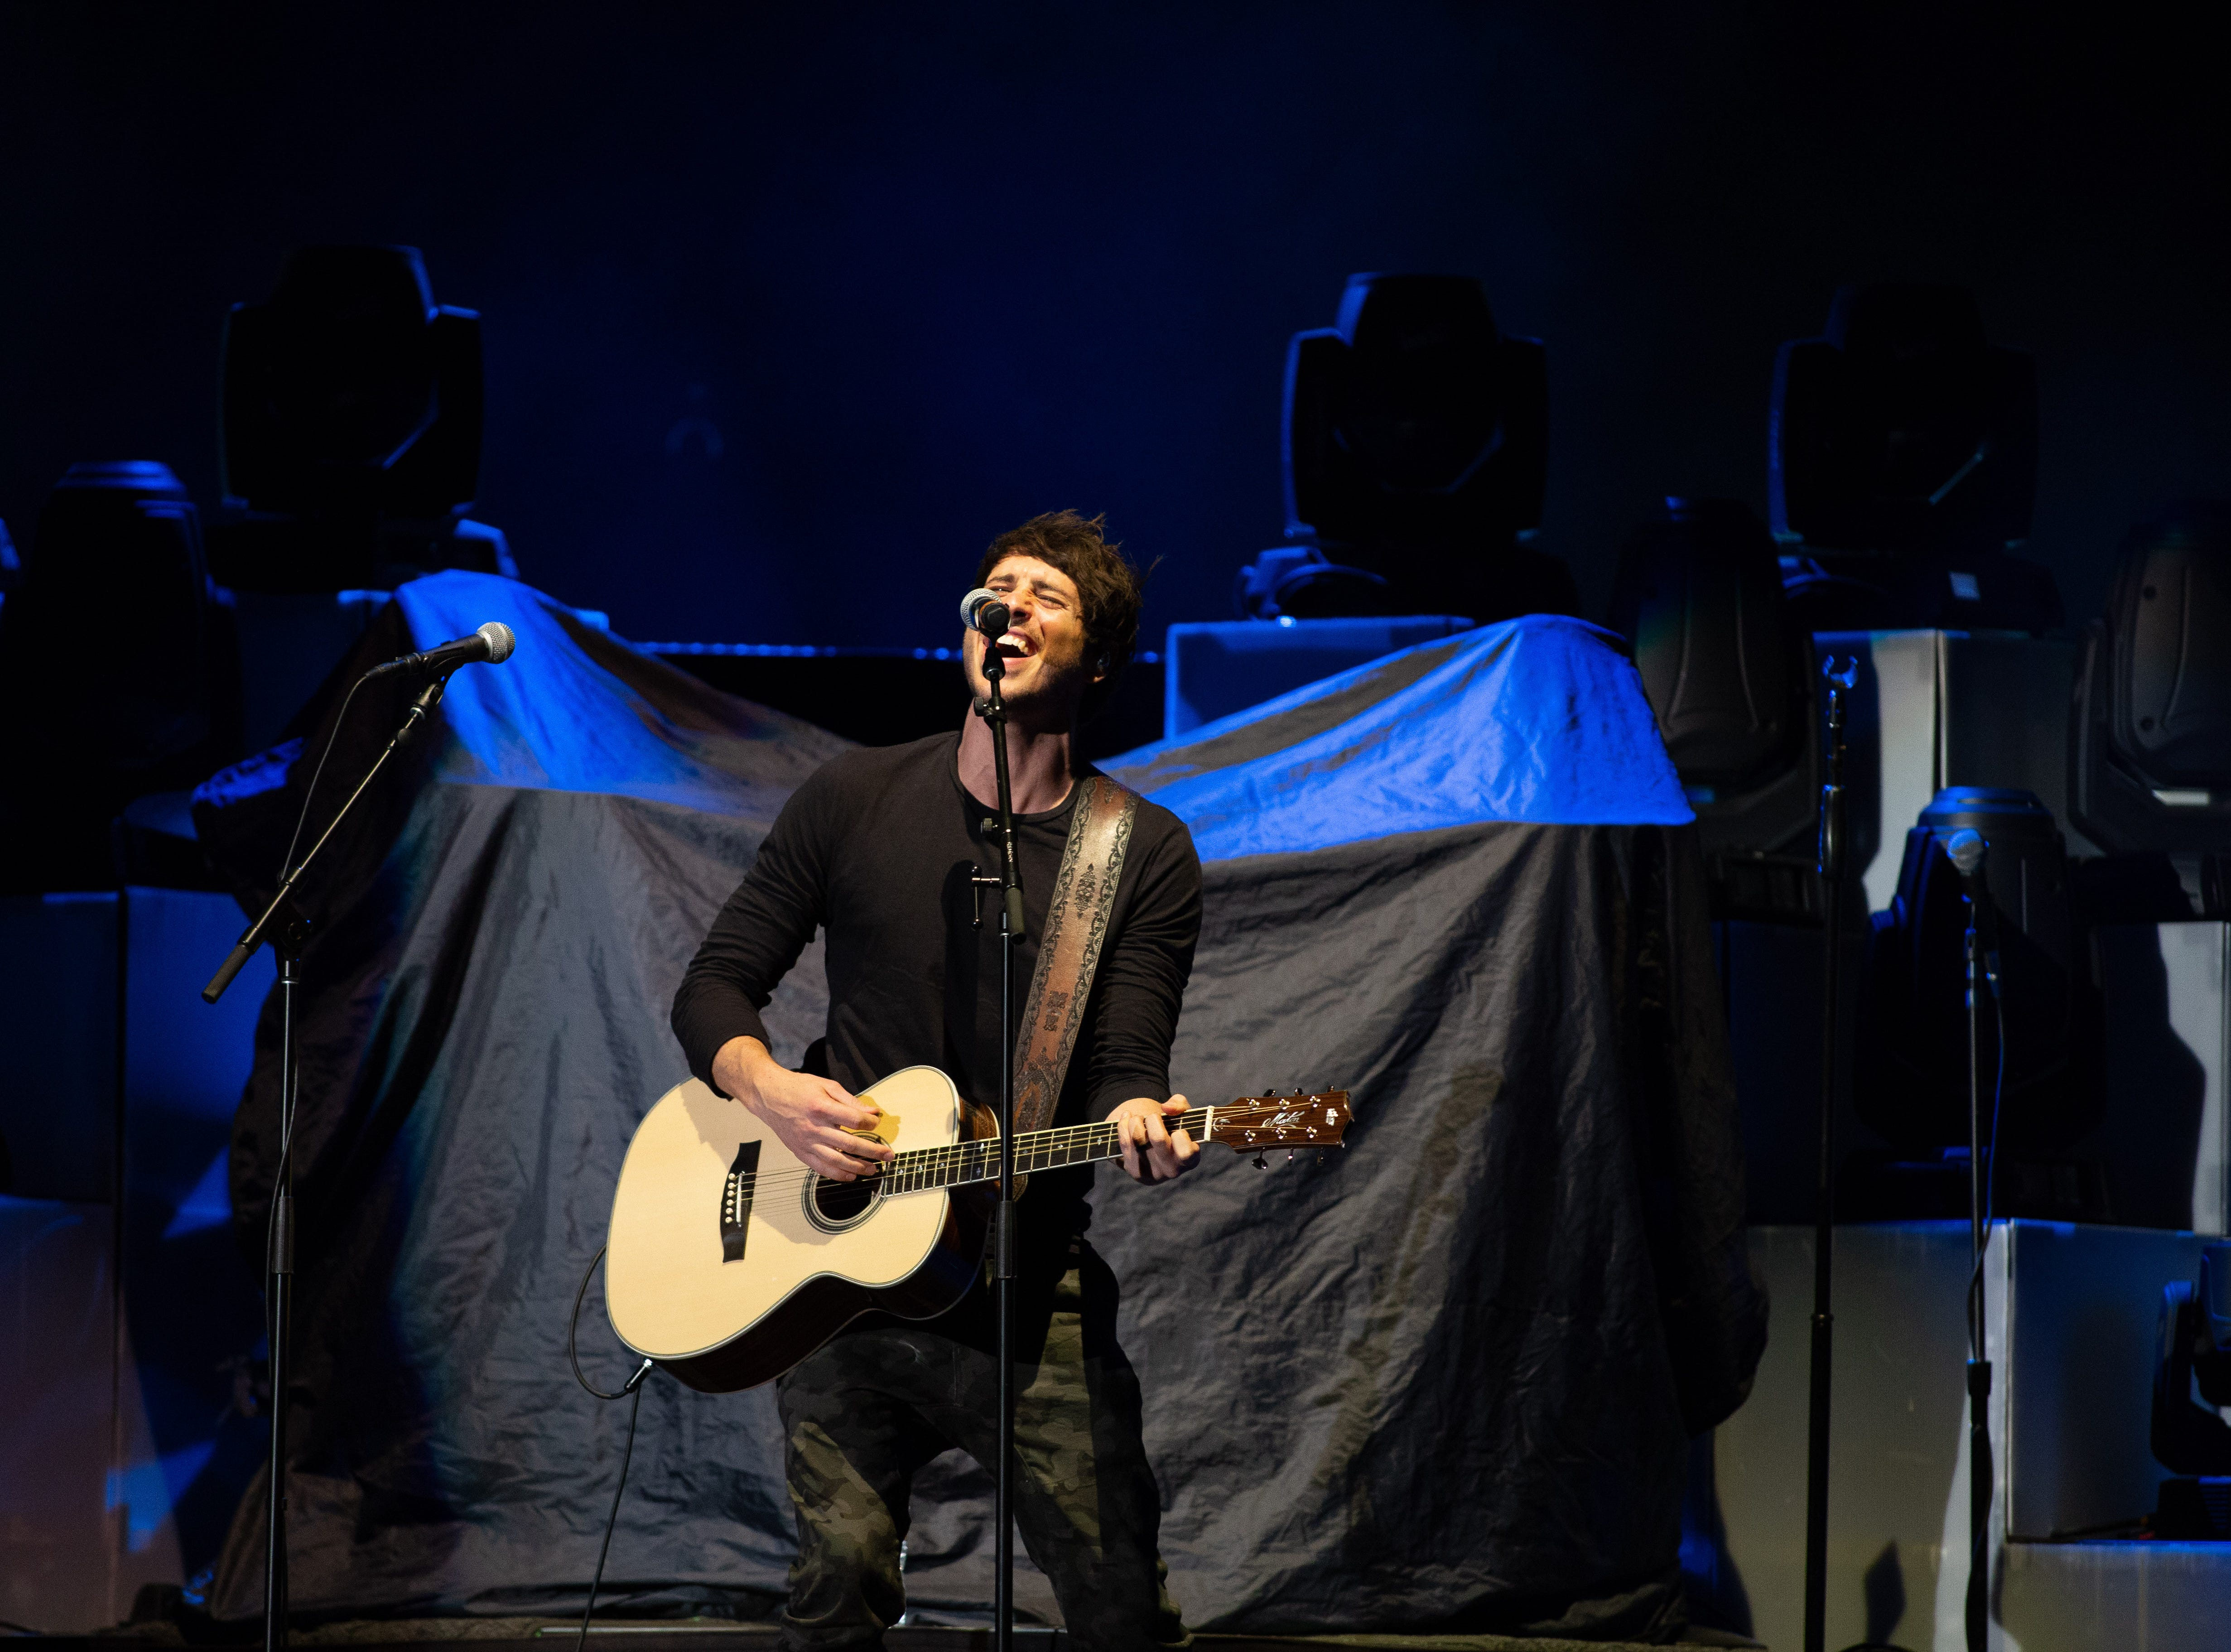 Morgan Evans warms up the crowd with his original songs at the Chris Young concert held at the Pan Am Center in Las Cruces on Thursday, Sept. 13, 2018.